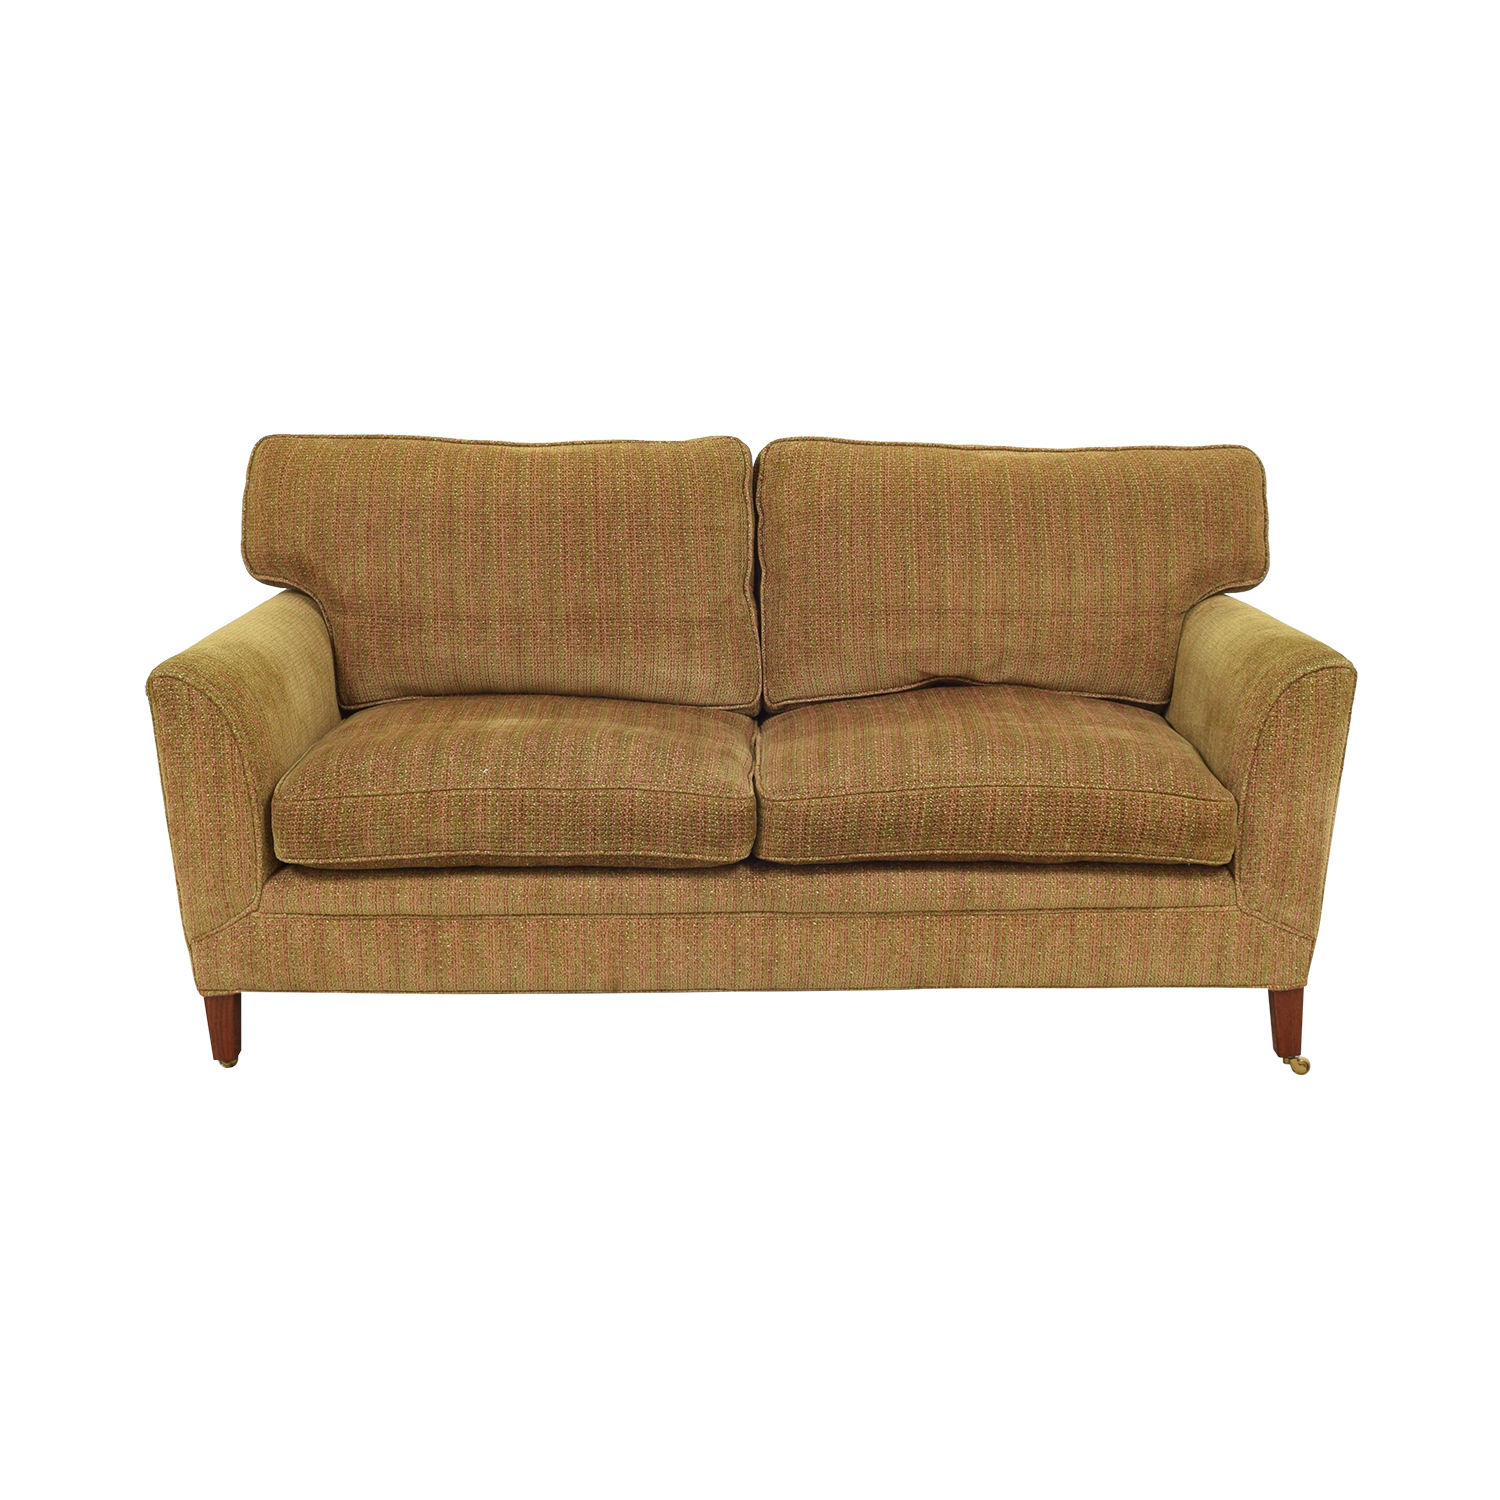 Brunschwig & Fils Two Cushion Loveseat / Classic Sofas